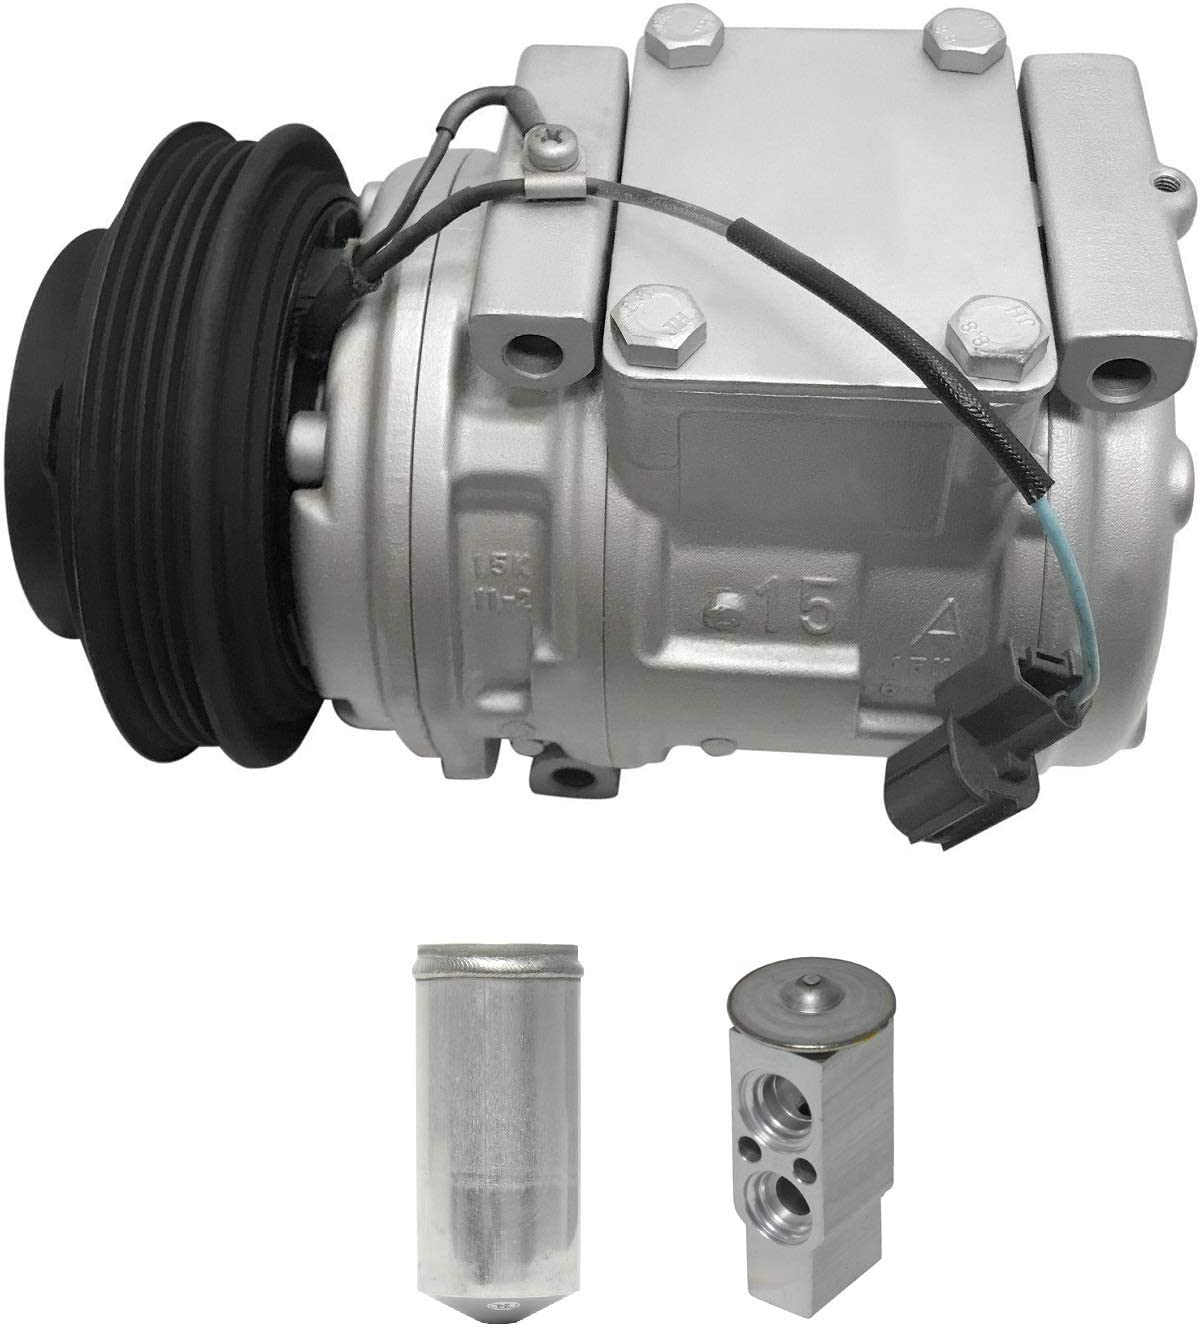 RYC Remanufactured AC Compressor Kit KT CG58